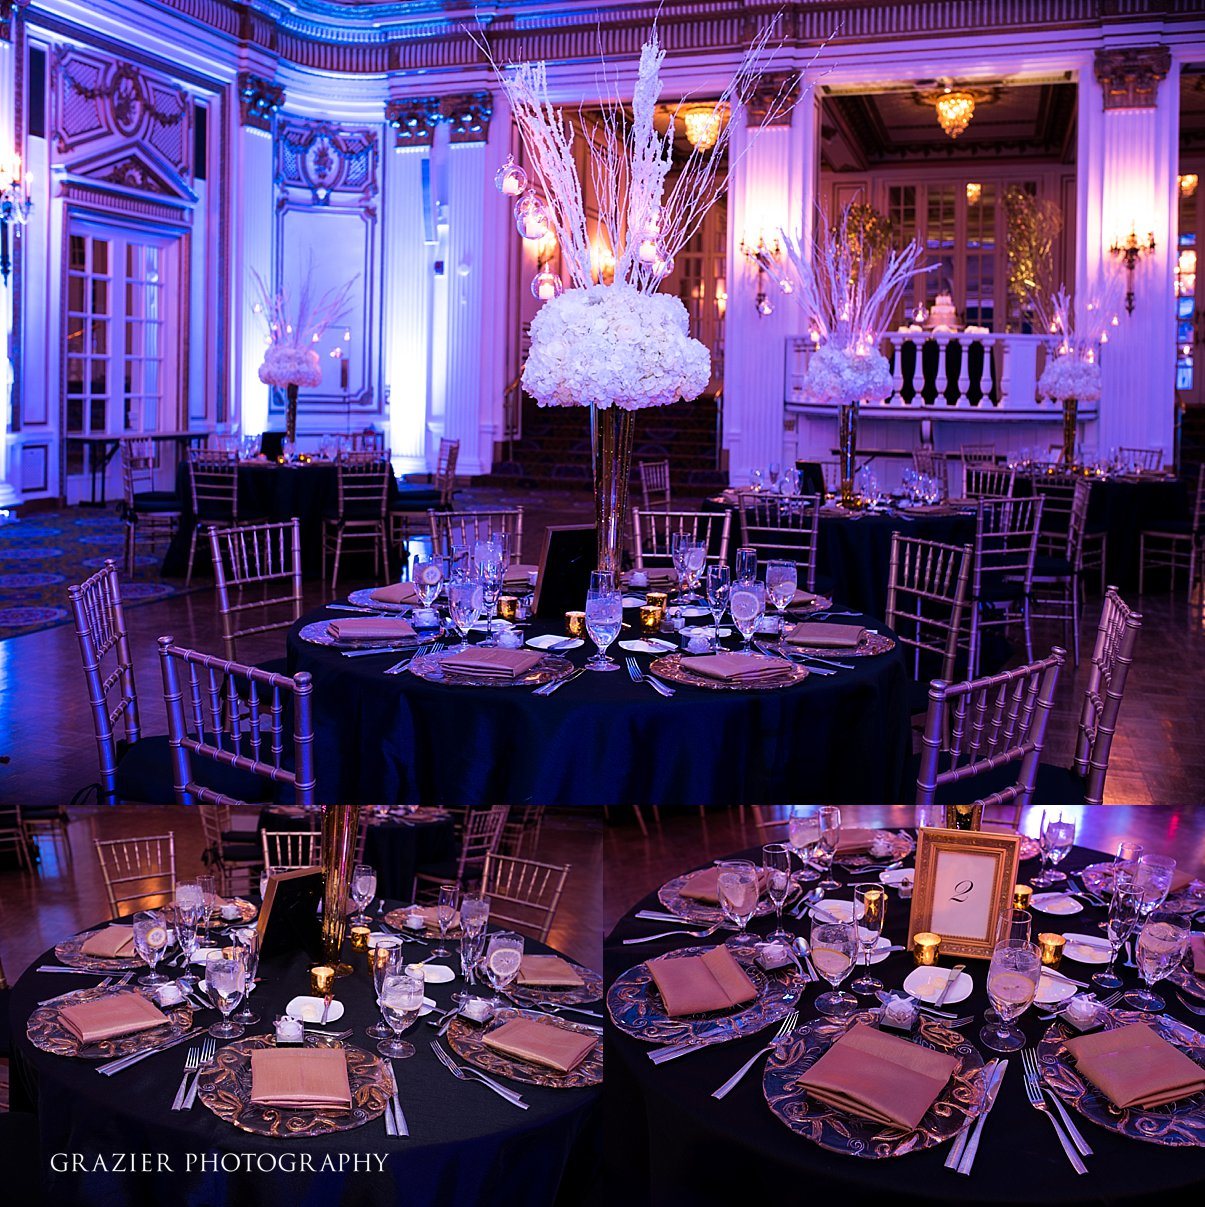 Grazier_Photography_Fairmont_Copley_Boston_Wedding_2016_045.JPG